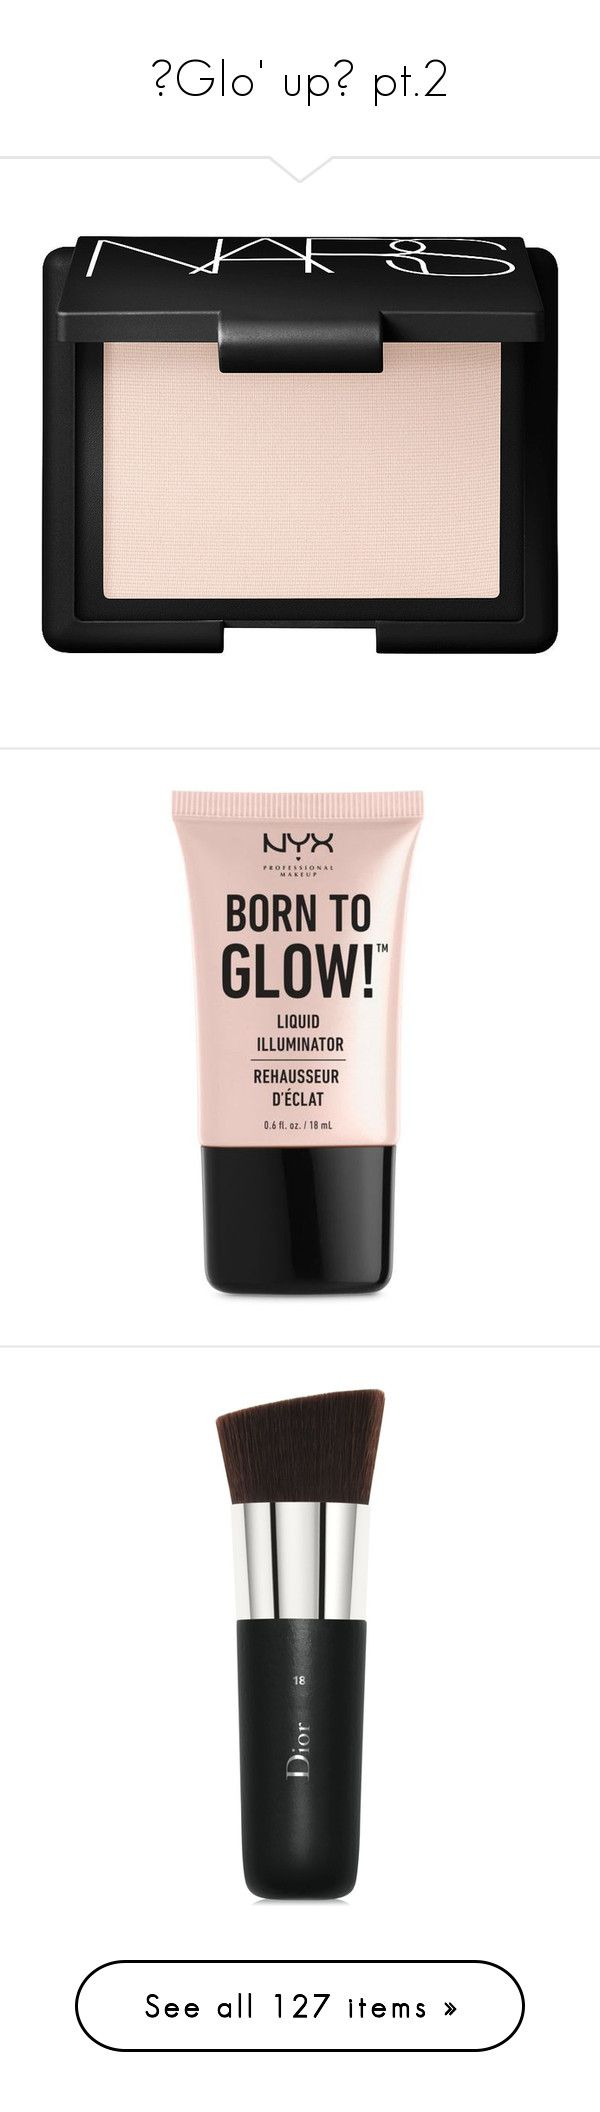 """""""✨Glo' up✨ pt.2"""" by adtricia ❤ liked on Polyvore featuring beauty products, makeup, cheek makeup, blush, beauty, fillers, cosmetics, nars cosmetics, face makeup and nyx cosmetics"""